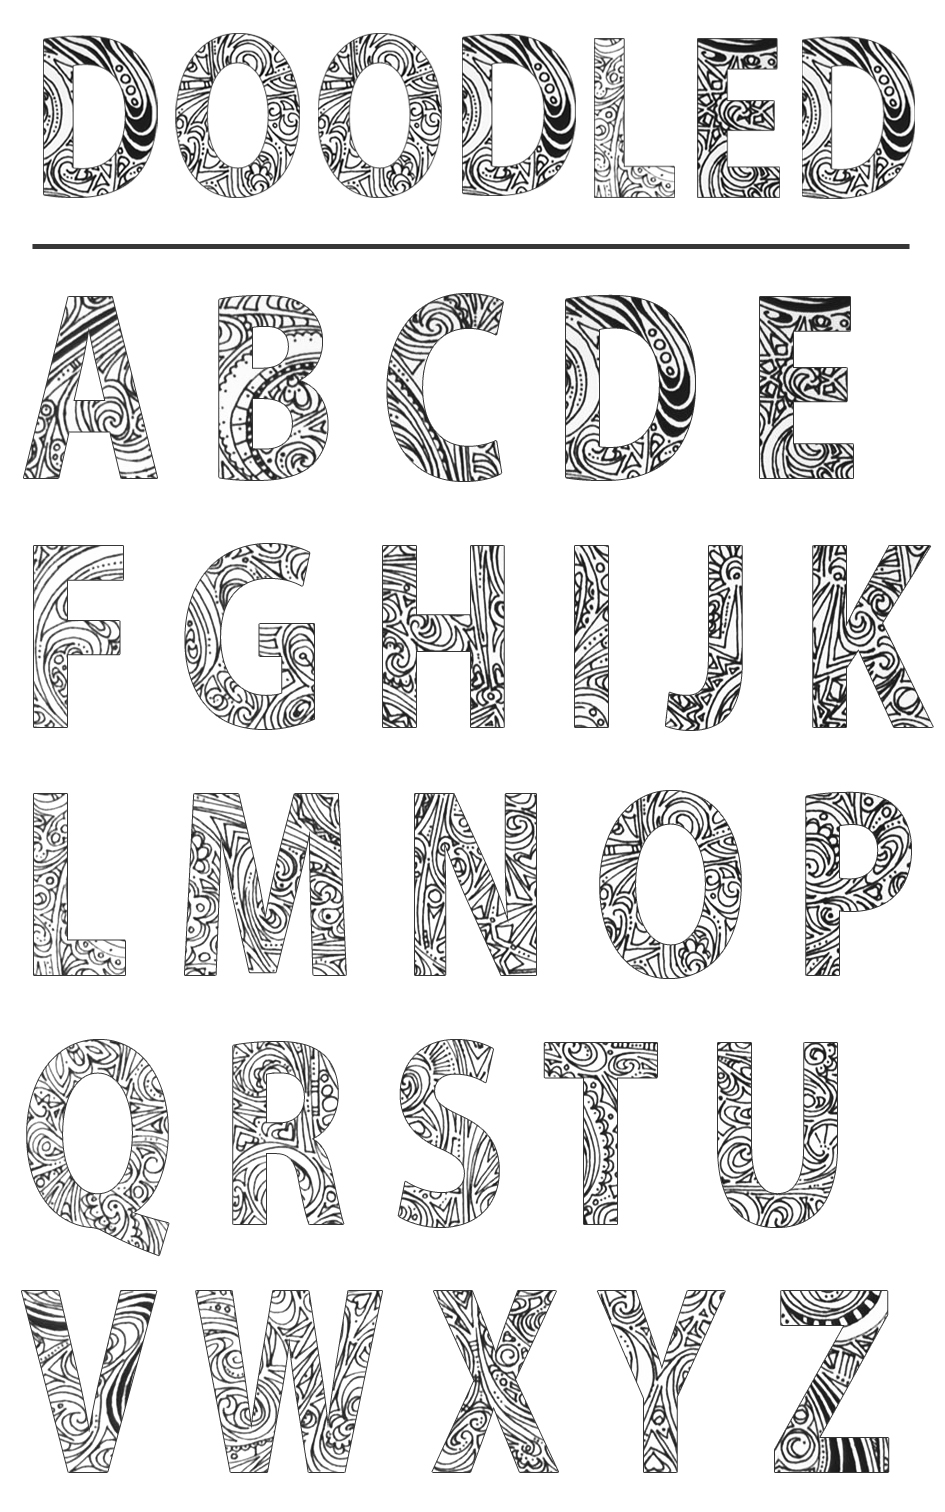 I Recently Entered A Font Alphabet Content Thanks For The Tip Brianna Here Are 3 Of My Fonts All Incorporating Doodles